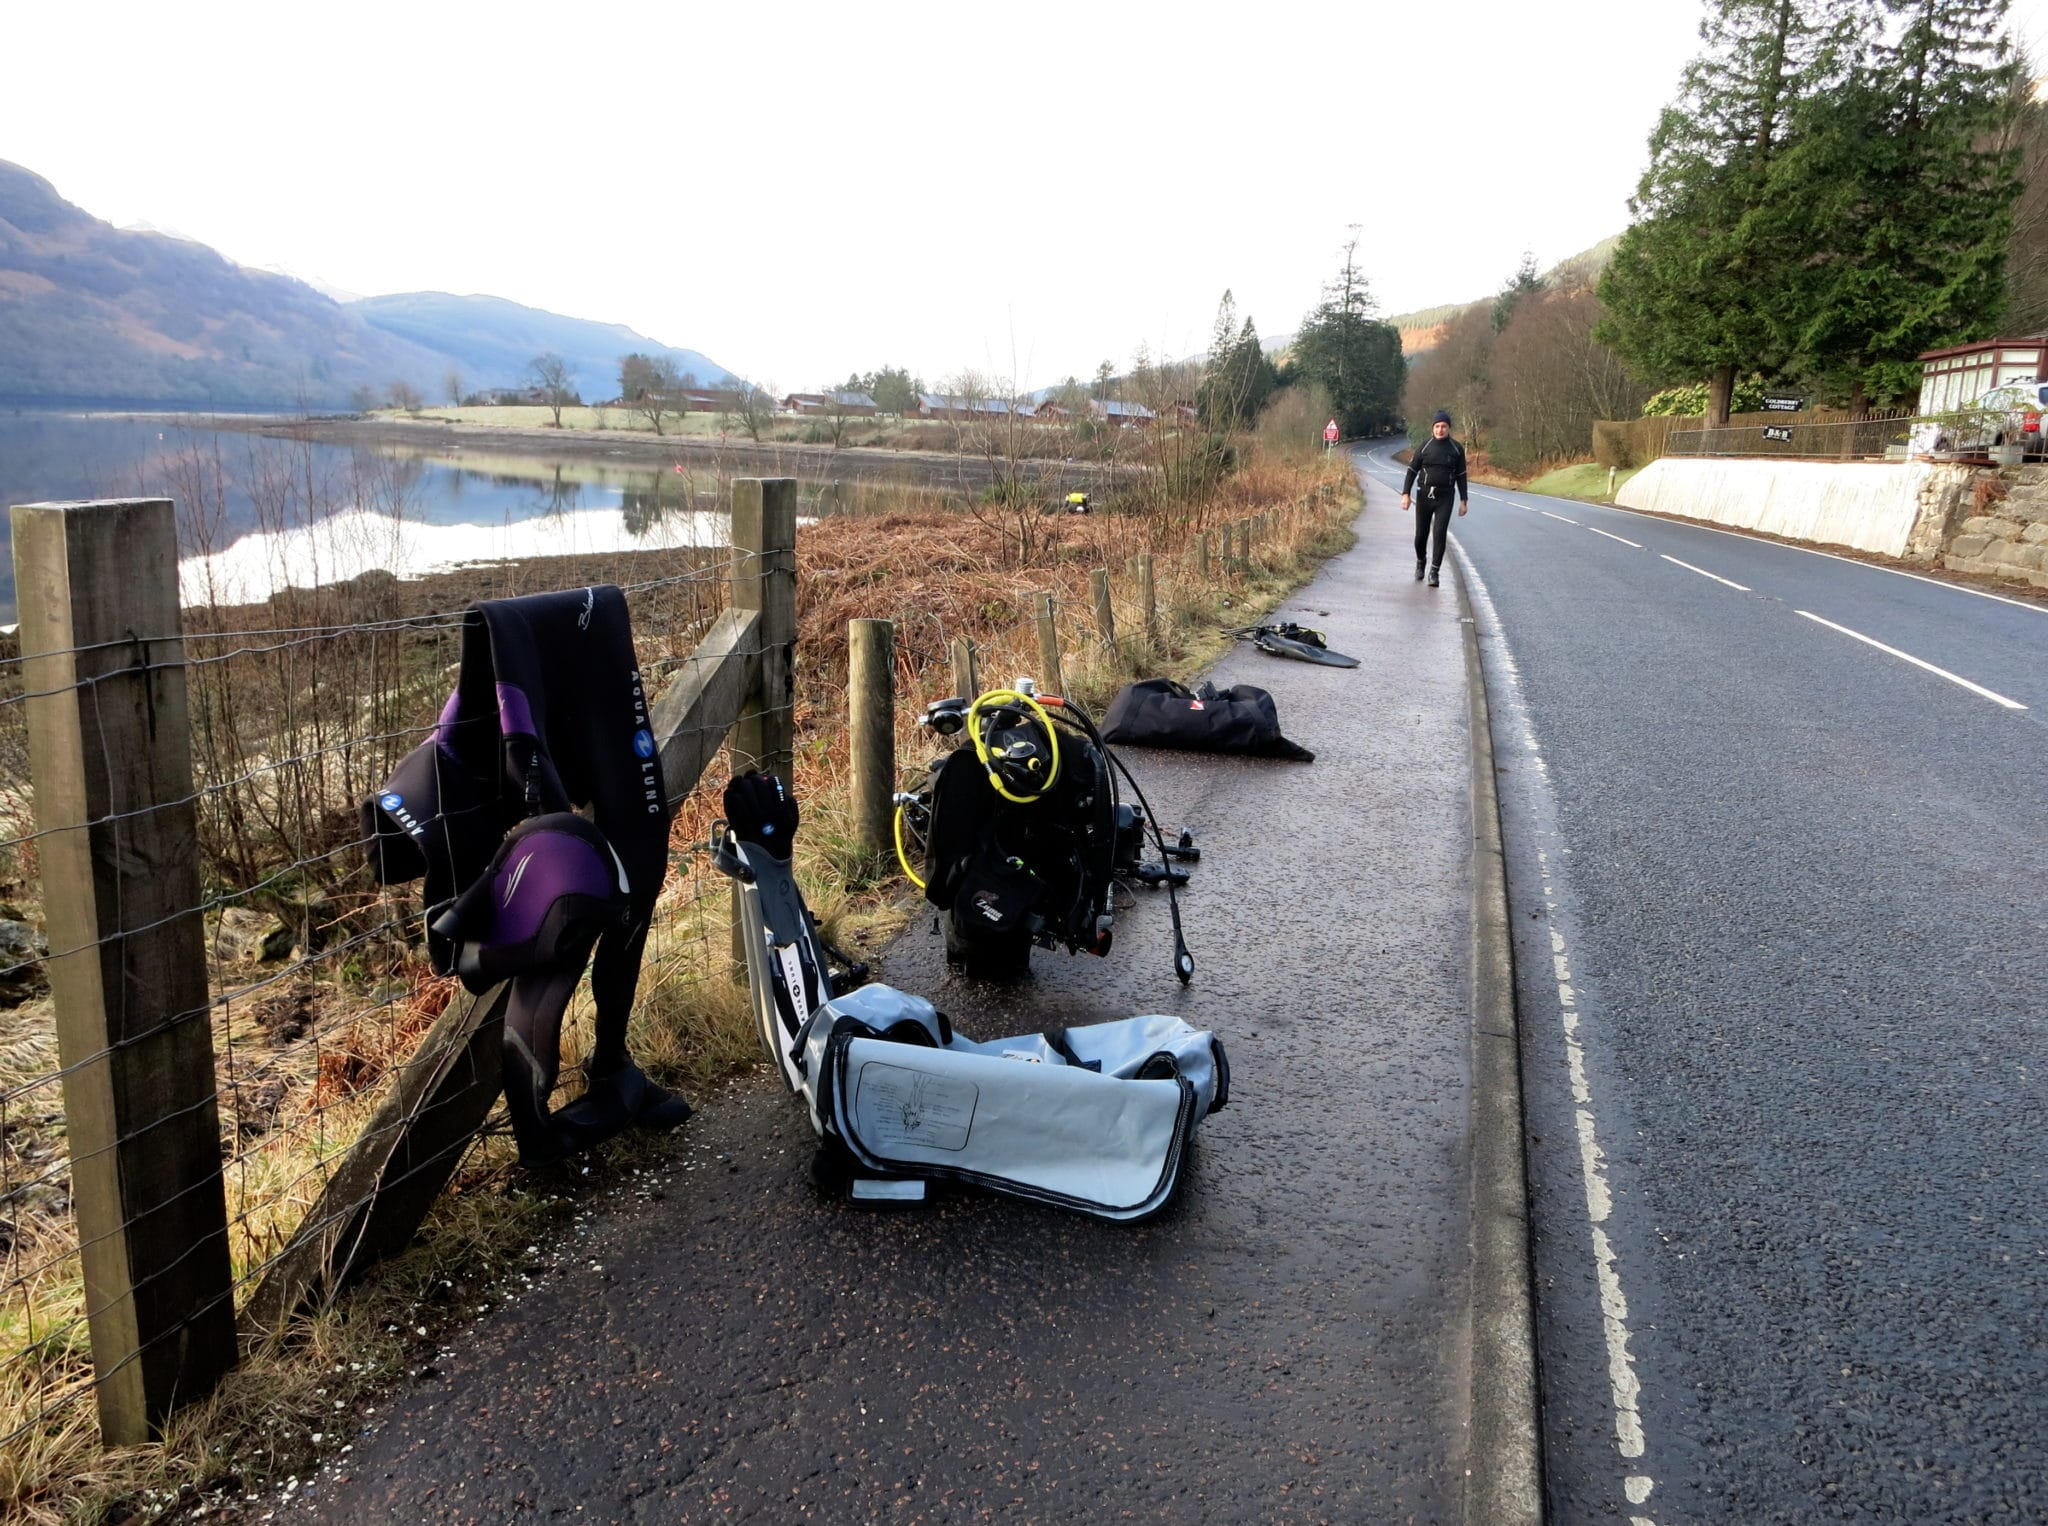 Scuba diving bag and gear - Conger Alley Loch Long Arrochar Scotland